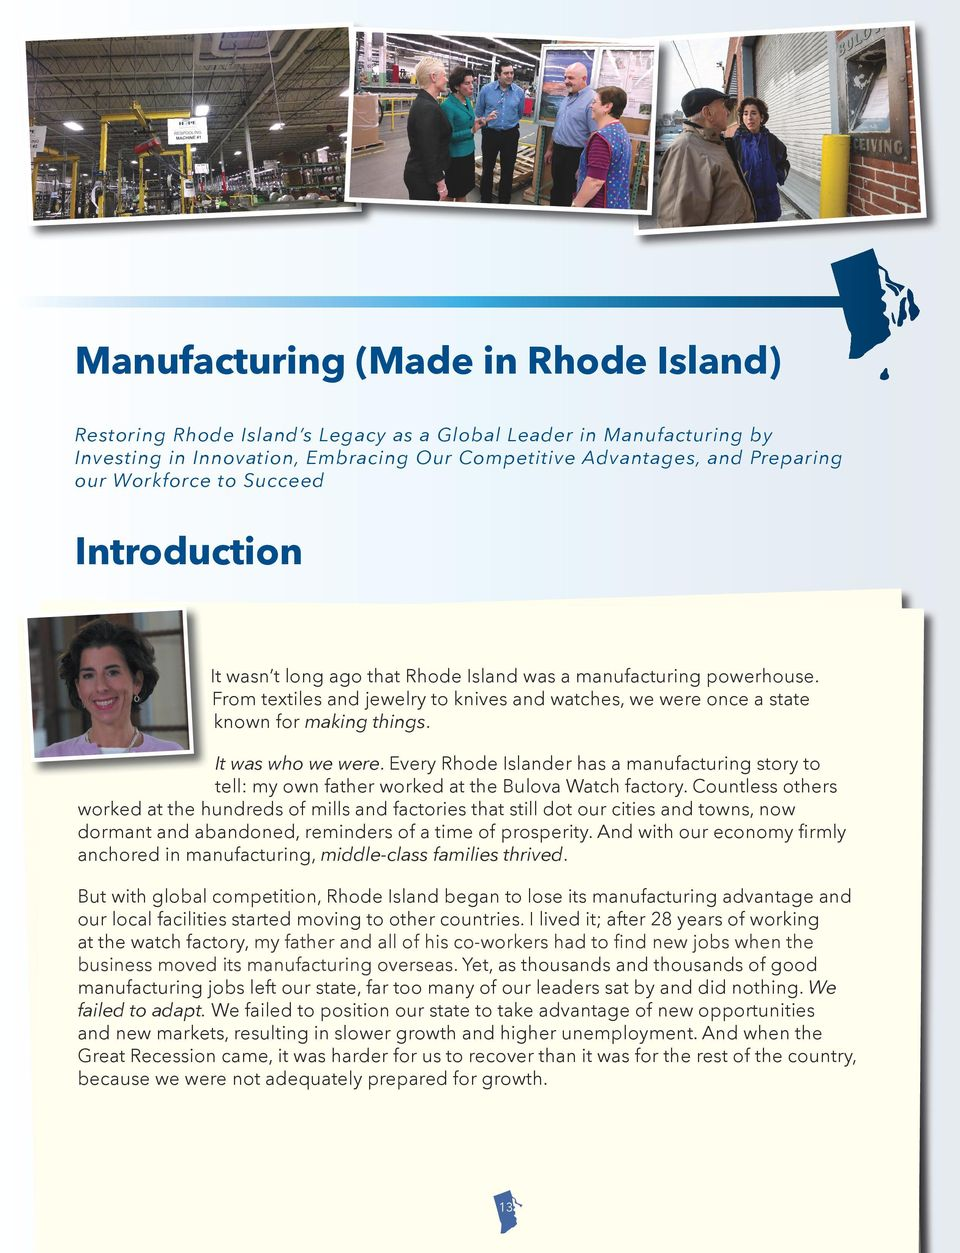 It was who we were. Every Rhode Islander has a manufacturing story to tell: my own father worked at the Bulova Watch factory.